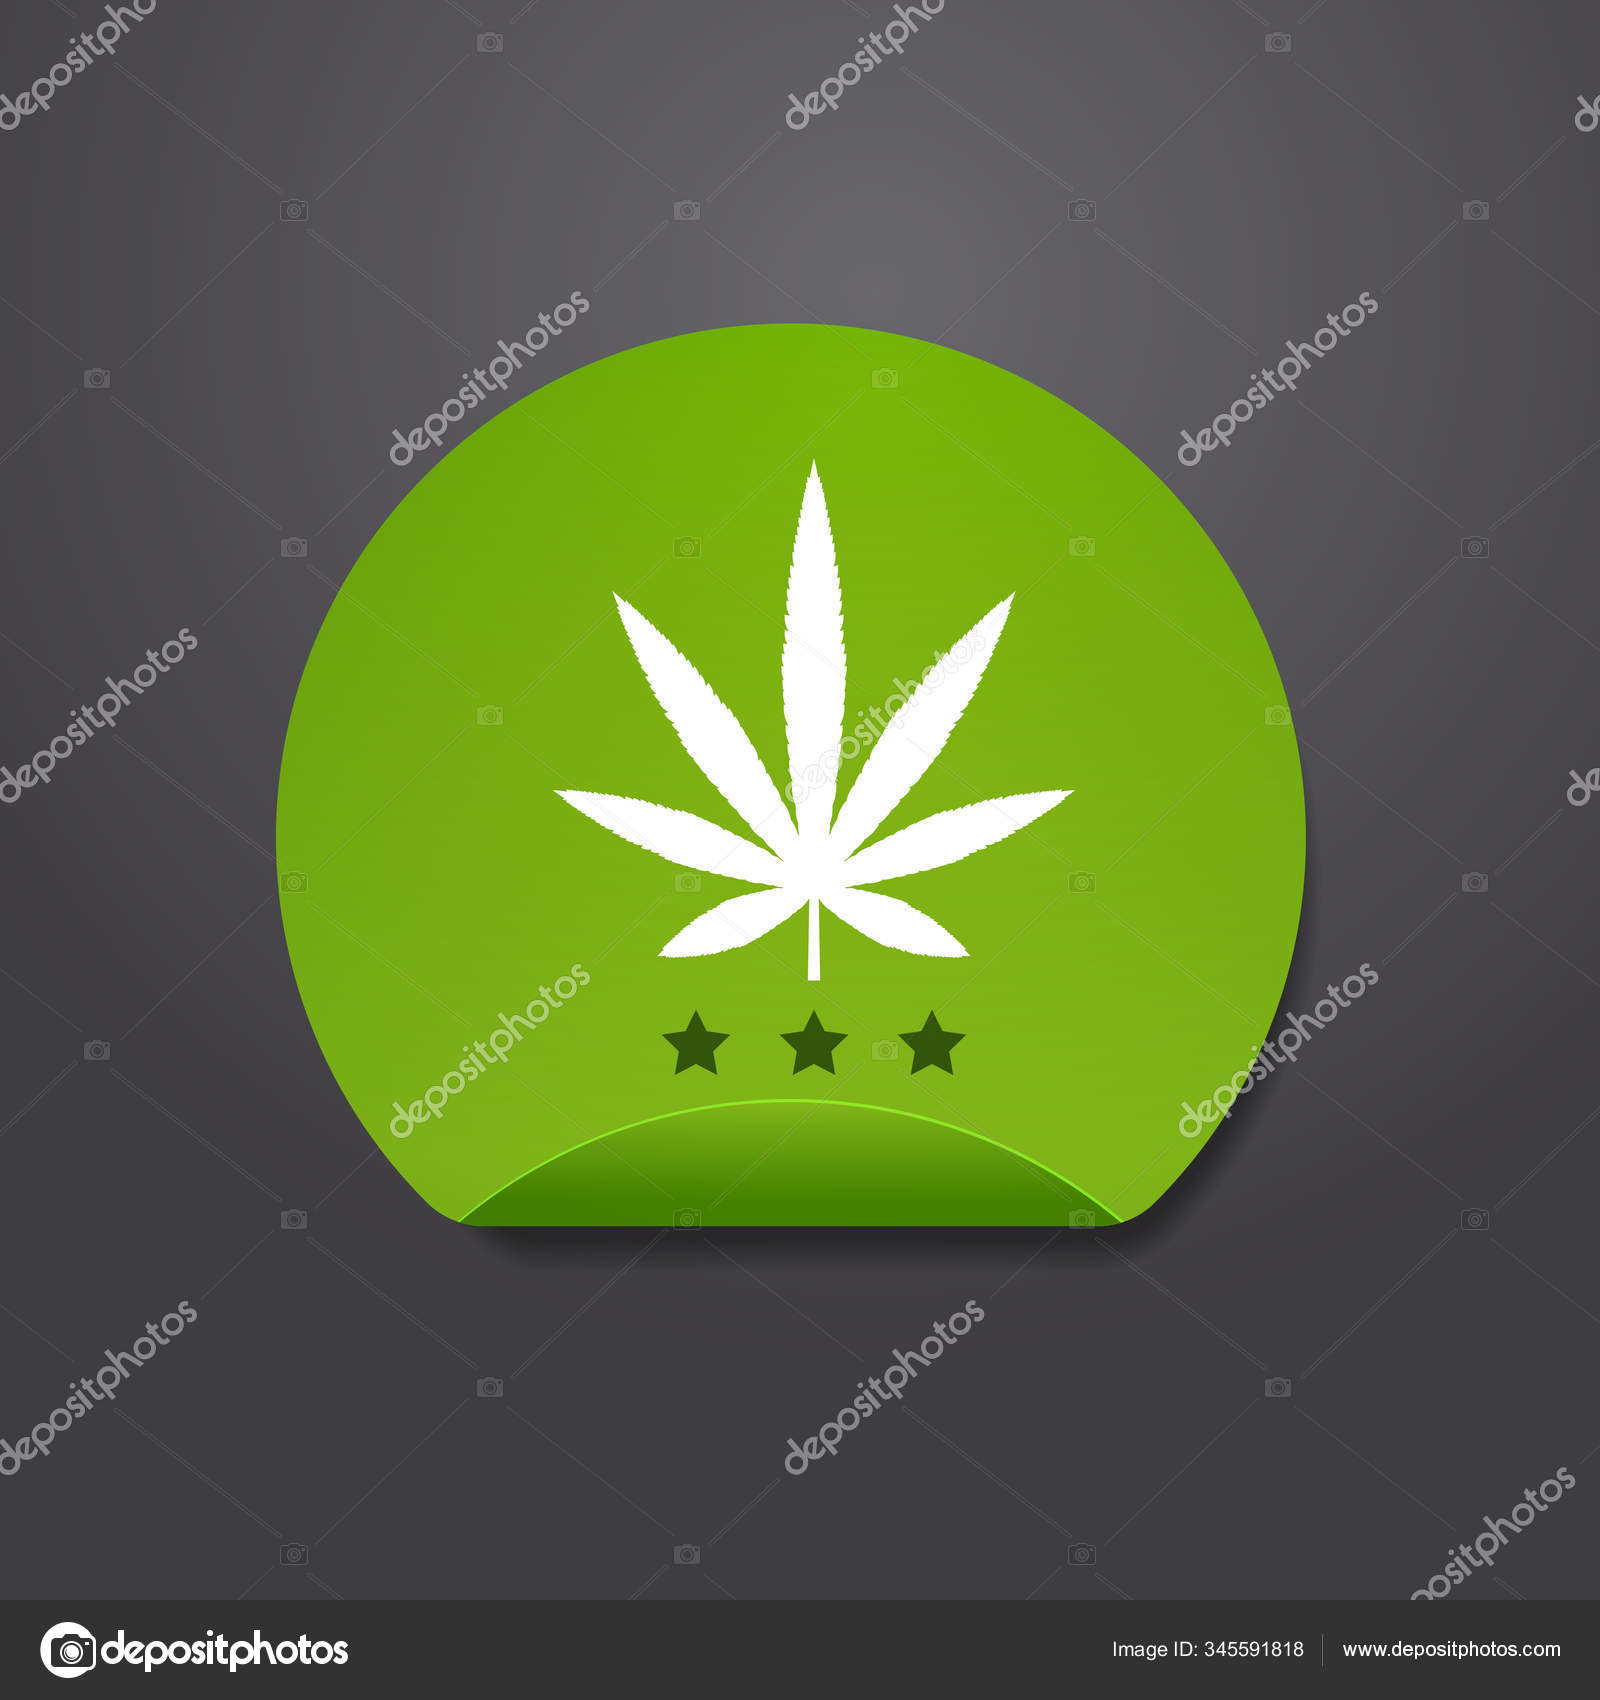 marijuana leaf sticker cbd oil label thc free icon hemp extract emblem ganja cannabis weed badge logo design flat stock vector c mast3r 345591818 https depositphotos com 345591818 stock illustration marijuana leaf sticker cbd oil html